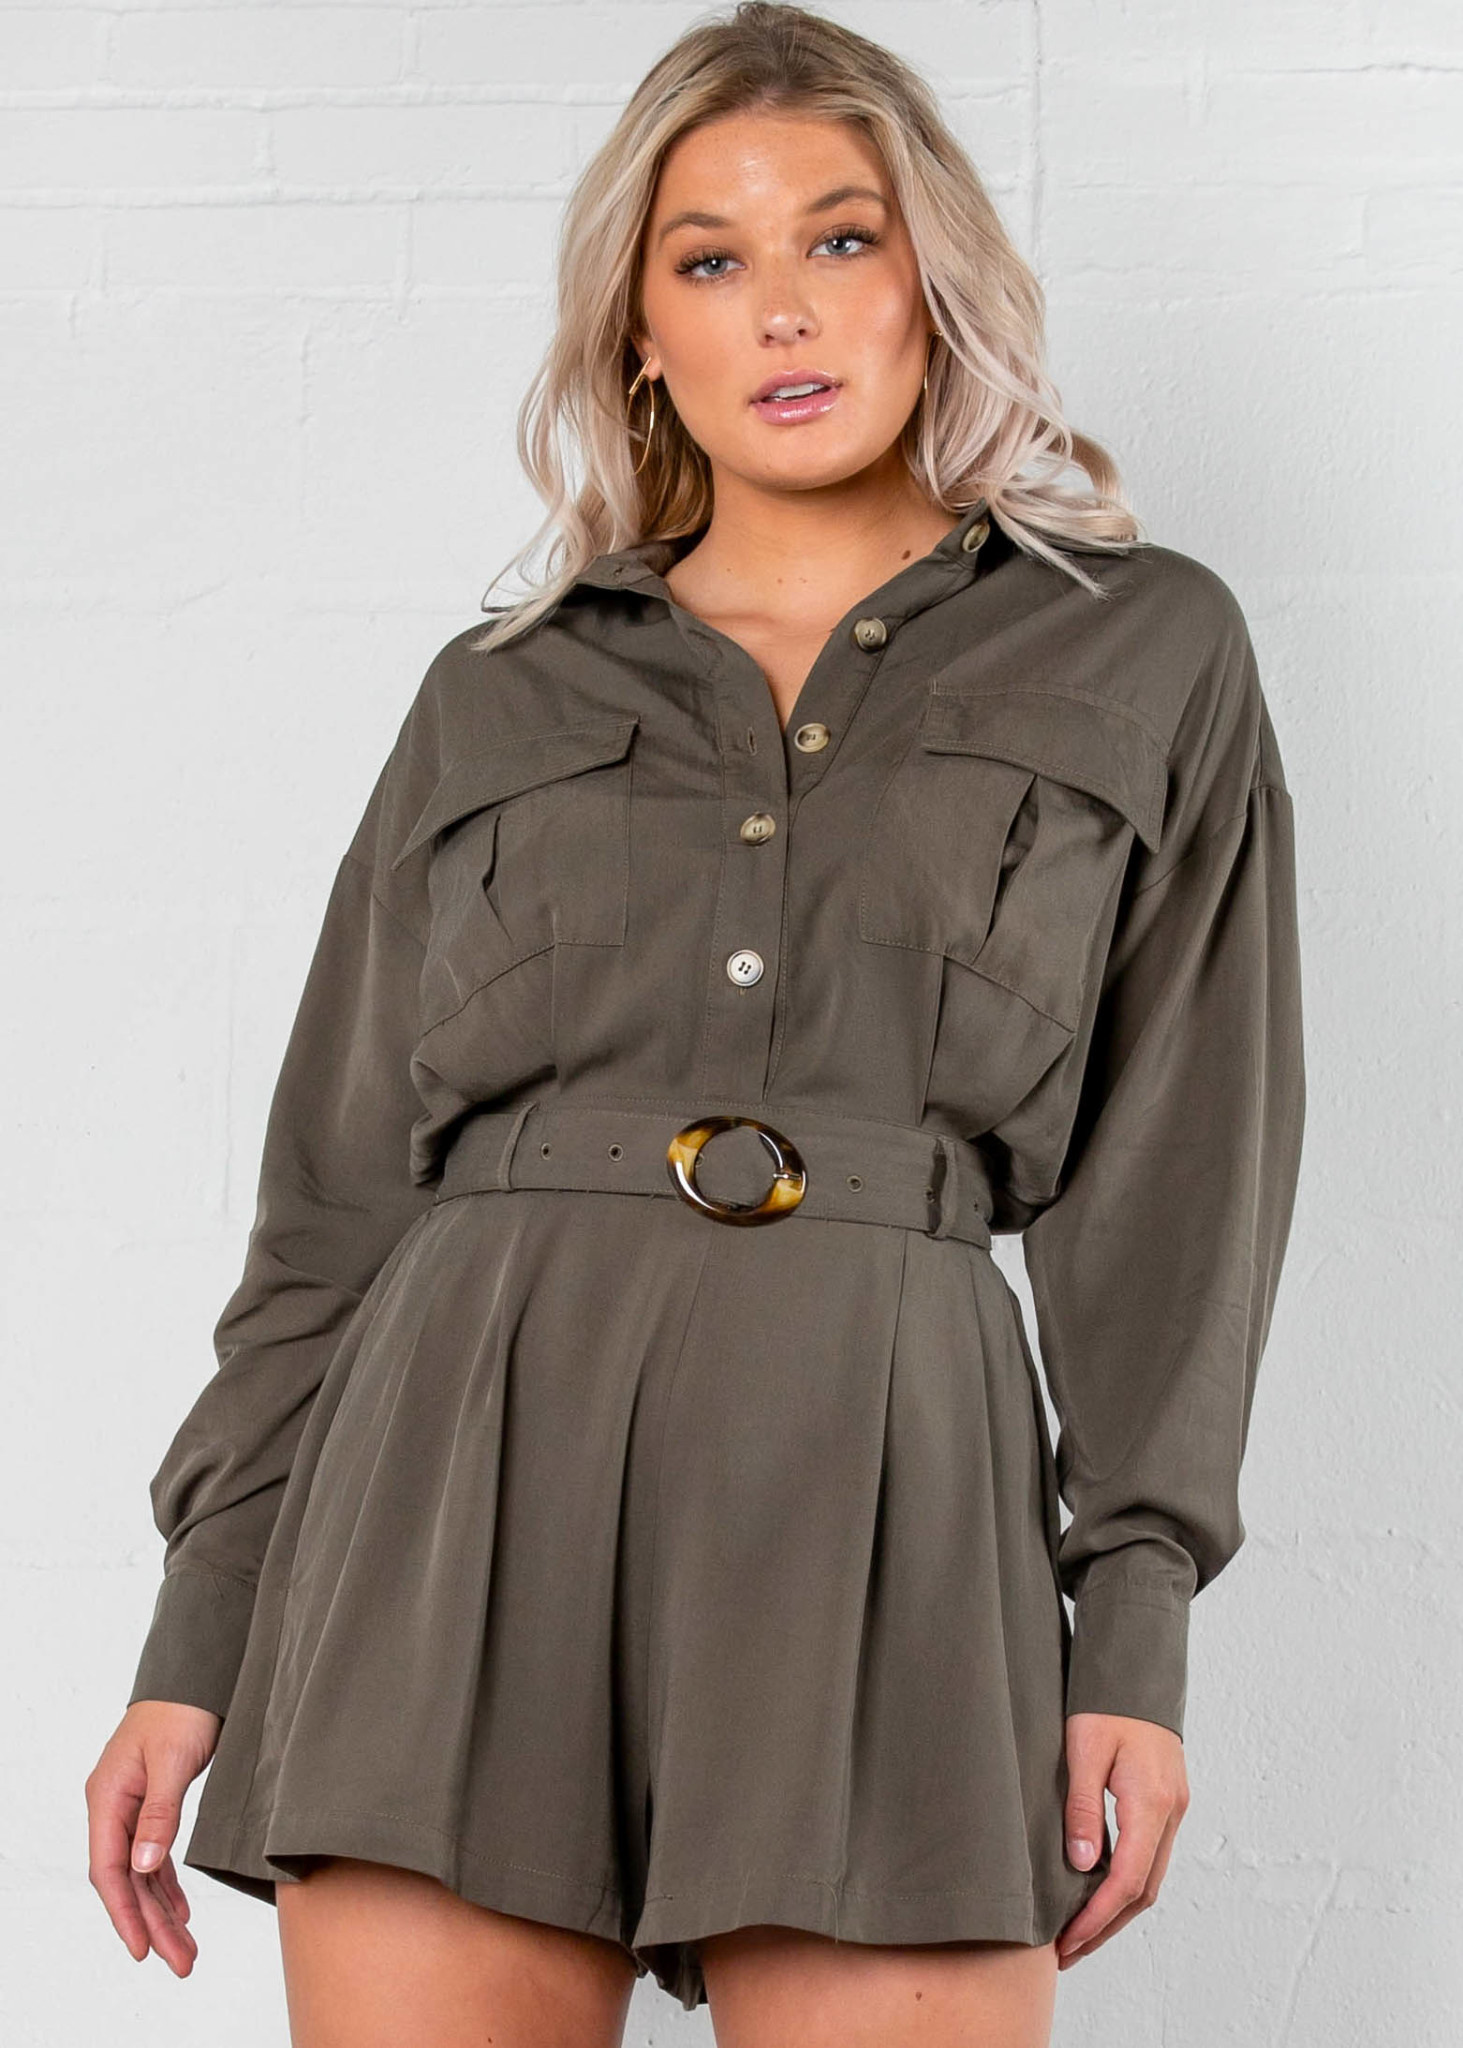 NAME OF LOVE BELTED ROMPER